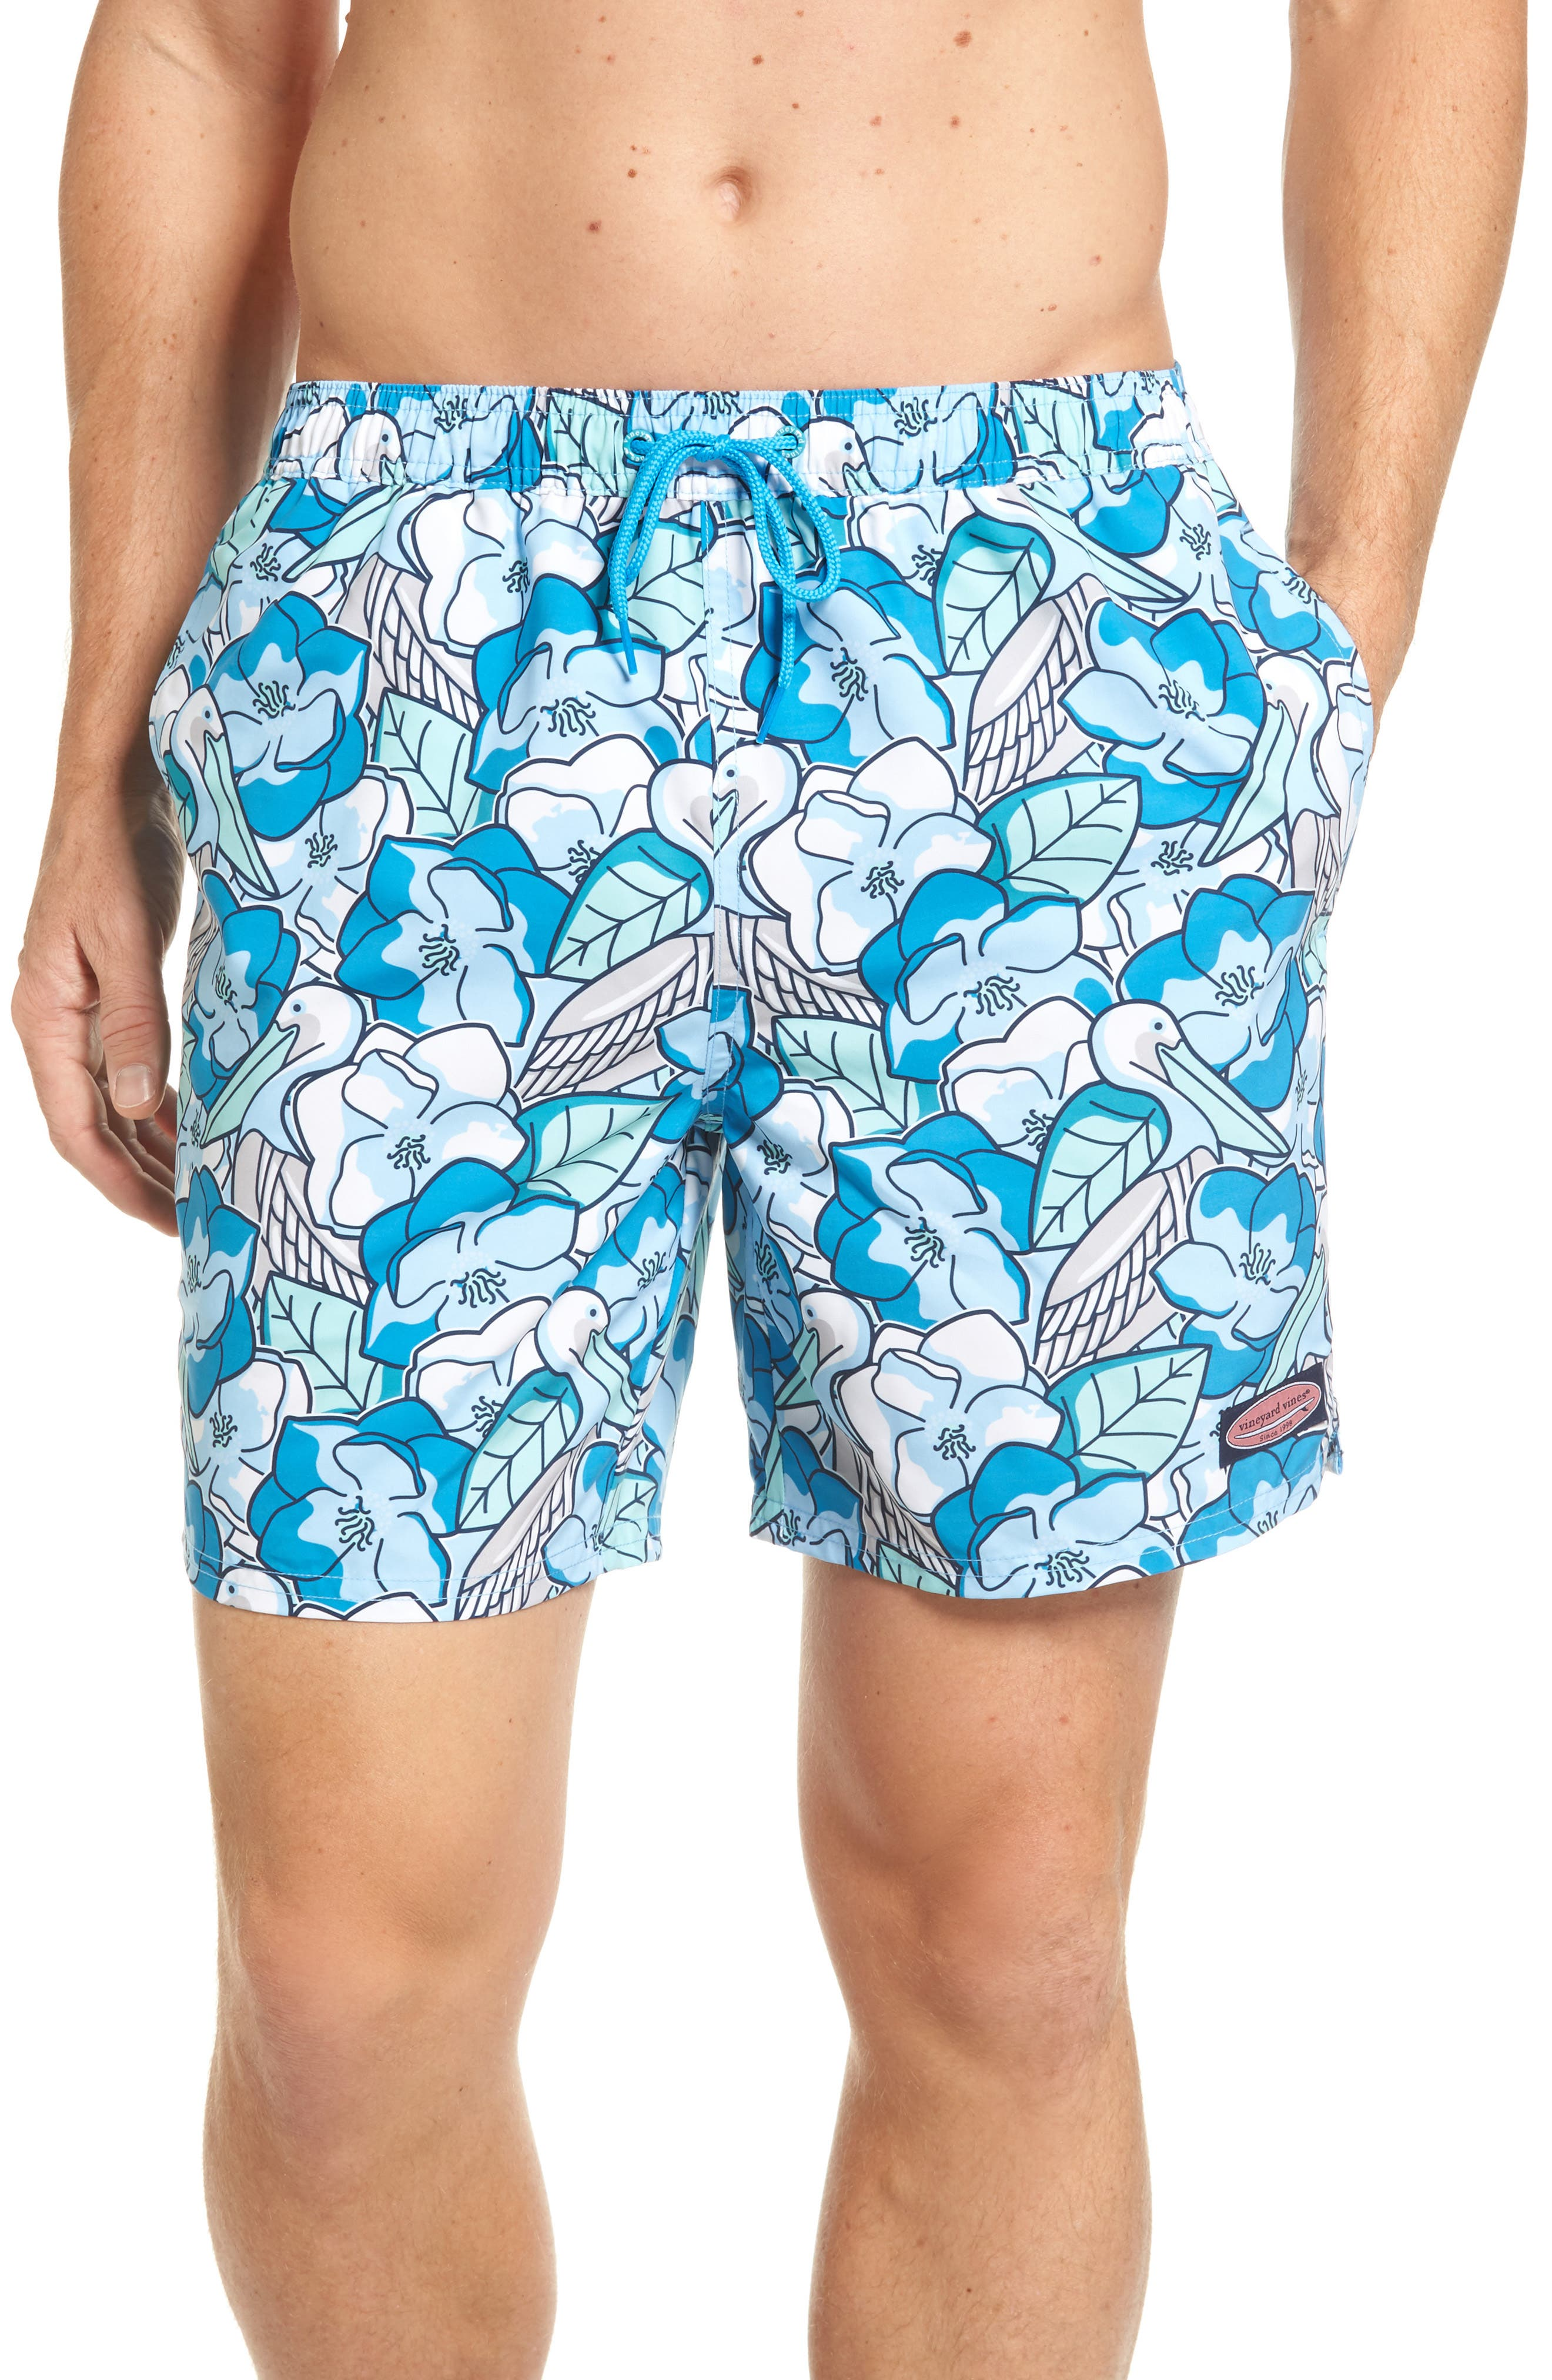 Pelican Magnolias Chappy Swim Trunks,                             Main thumbnail 1, color,                             413